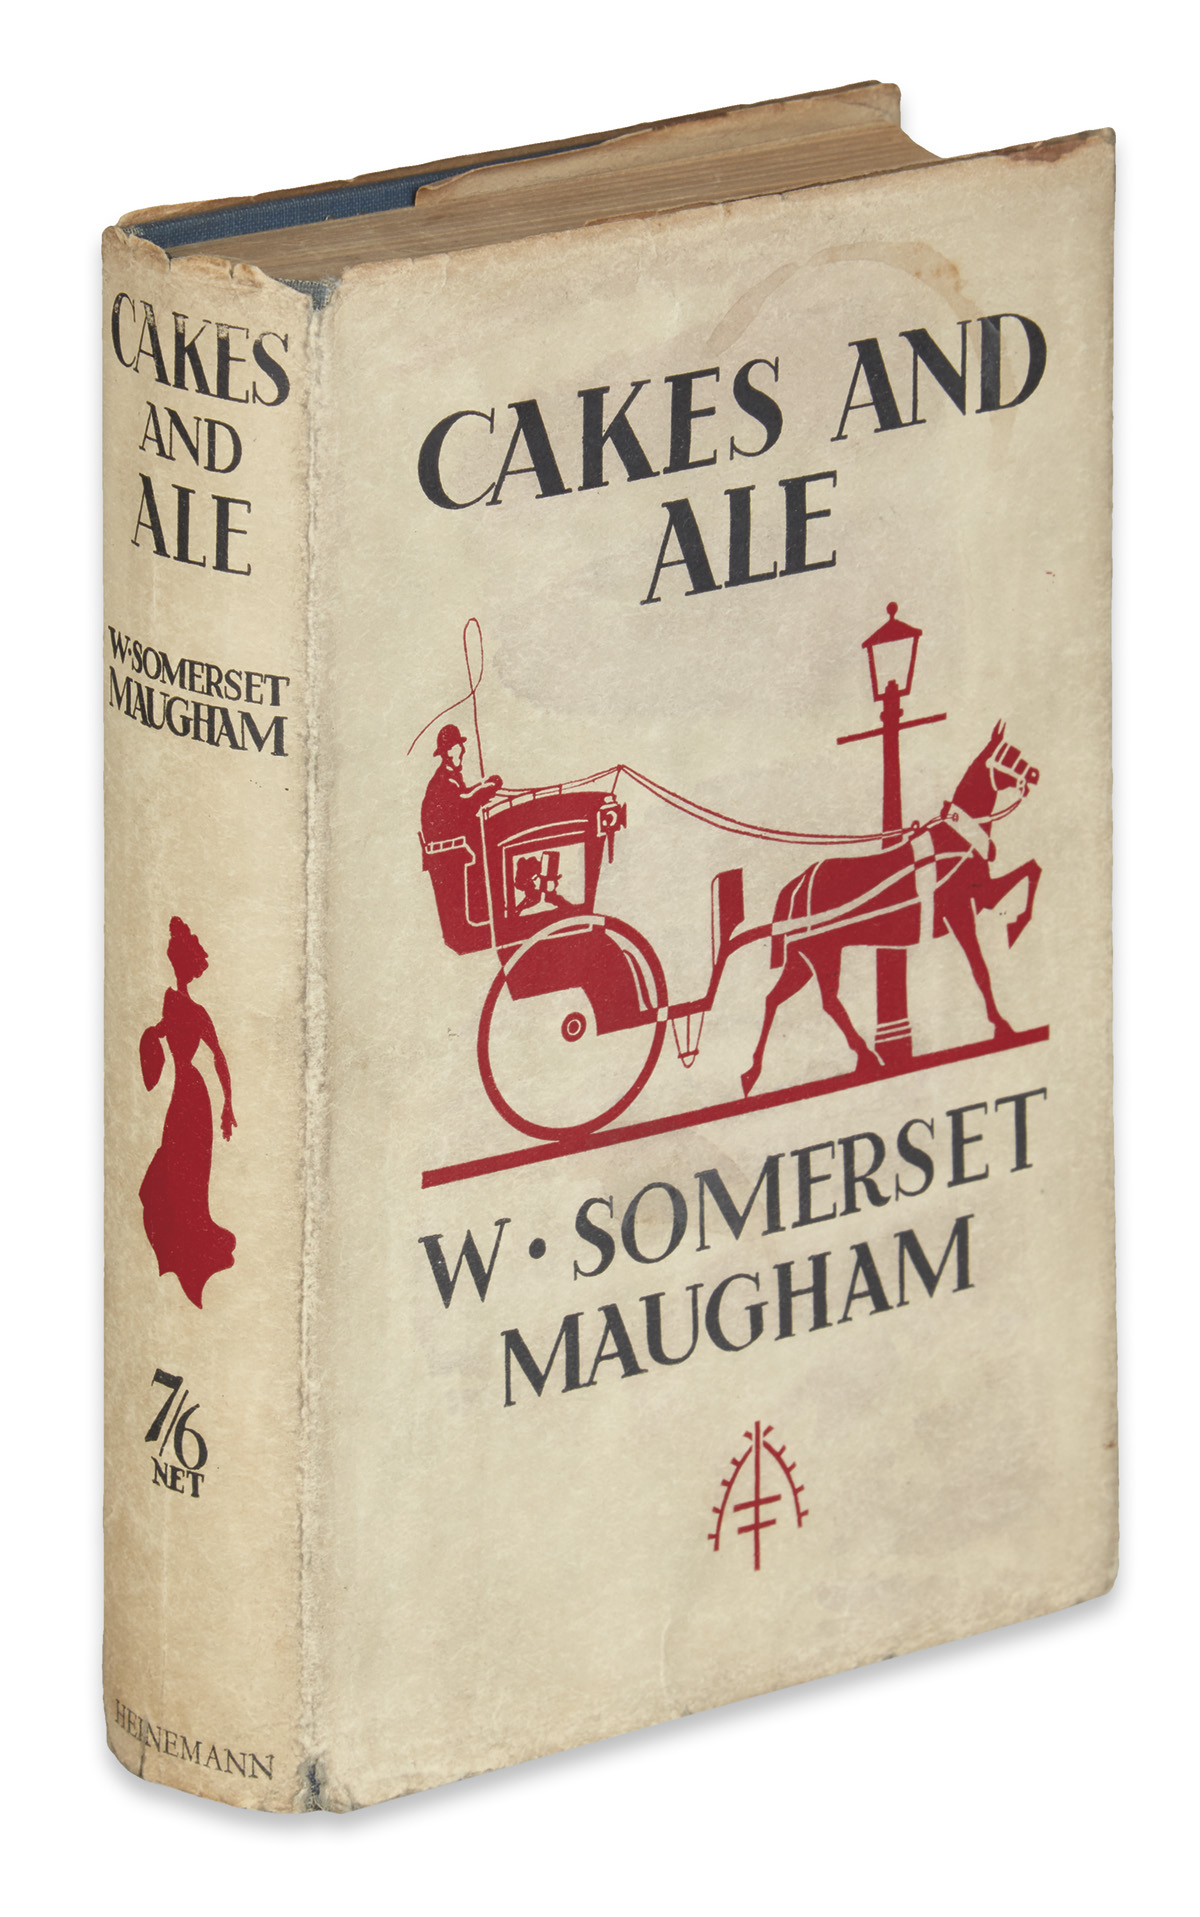 MAUGHAM-W-SOMERSET-Cakes-And-Ale-or-the-Skeleton-in-the-Cupb